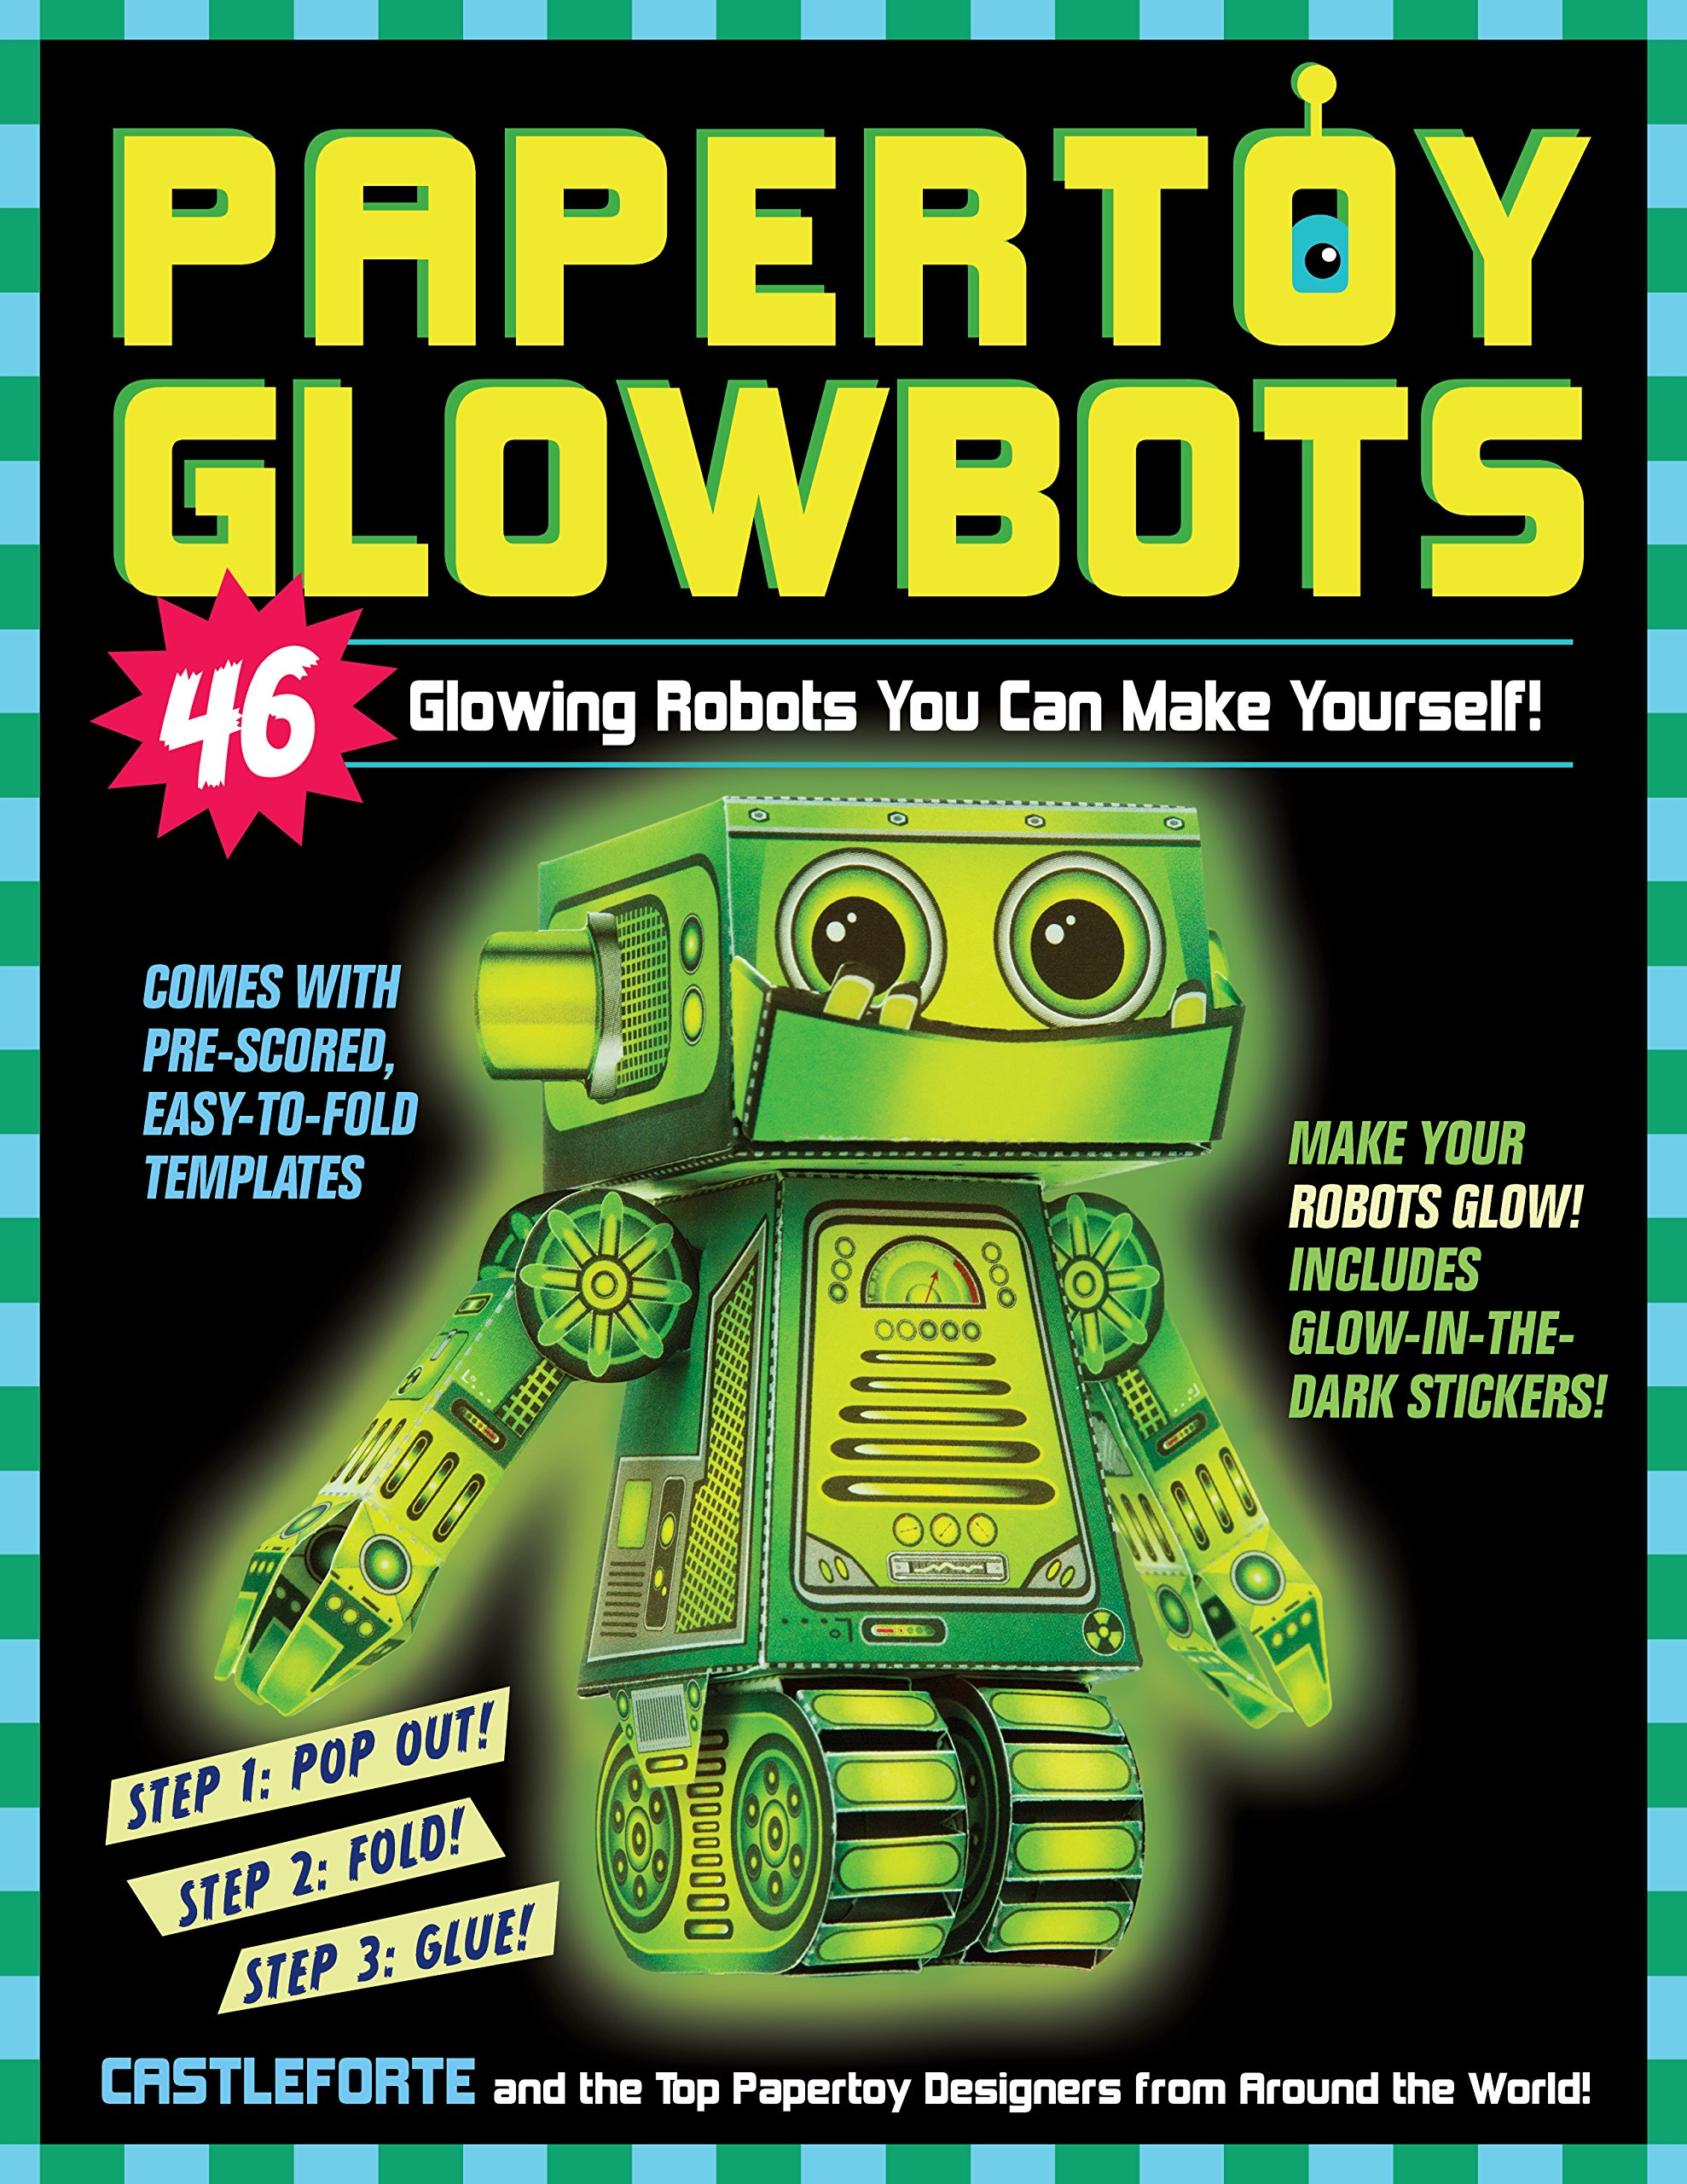 Papertoy Glowbots Glowing Robots Yourself product image